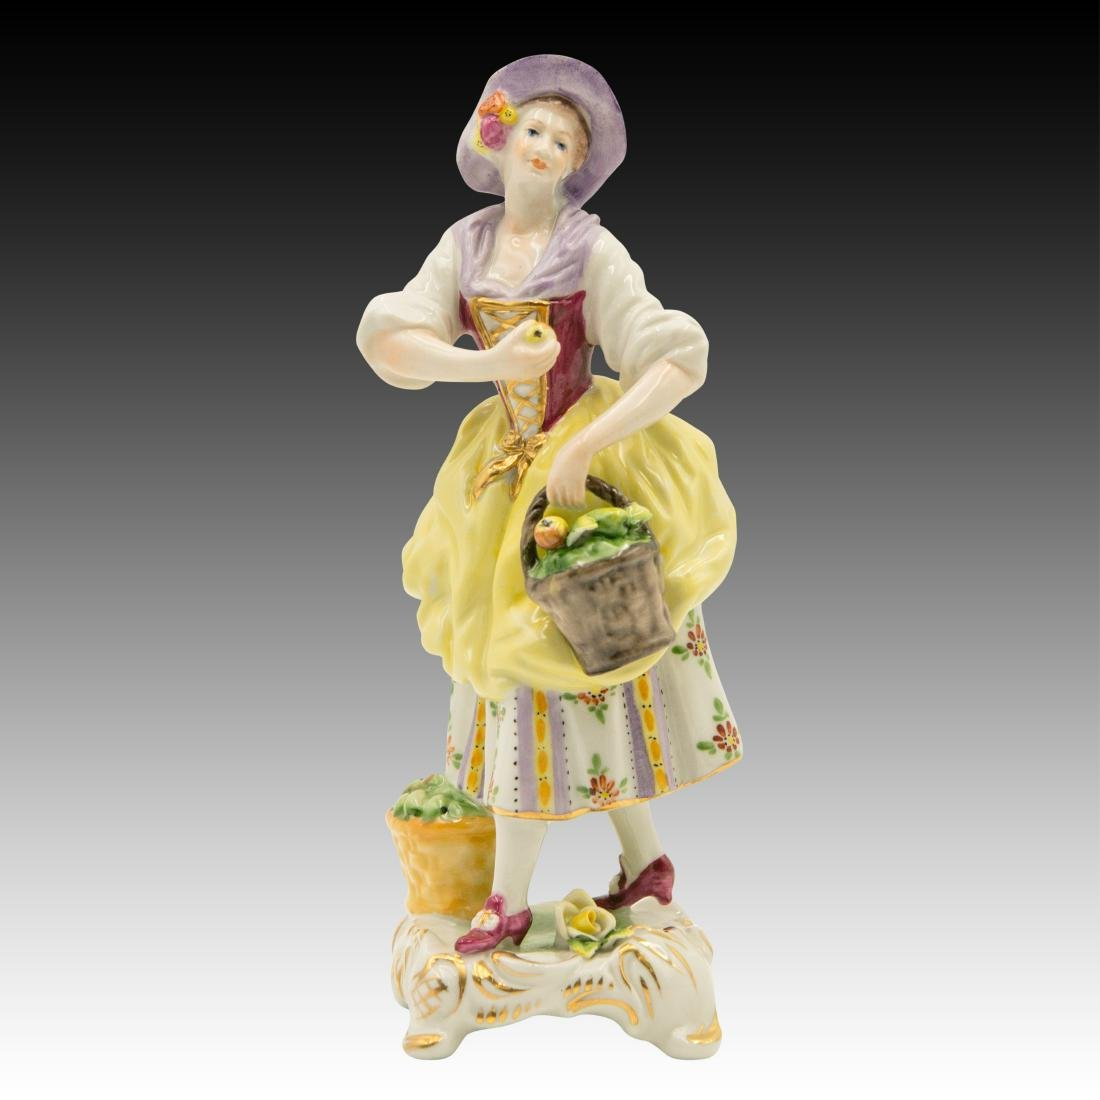 Young Girl Selling Apples Figurine